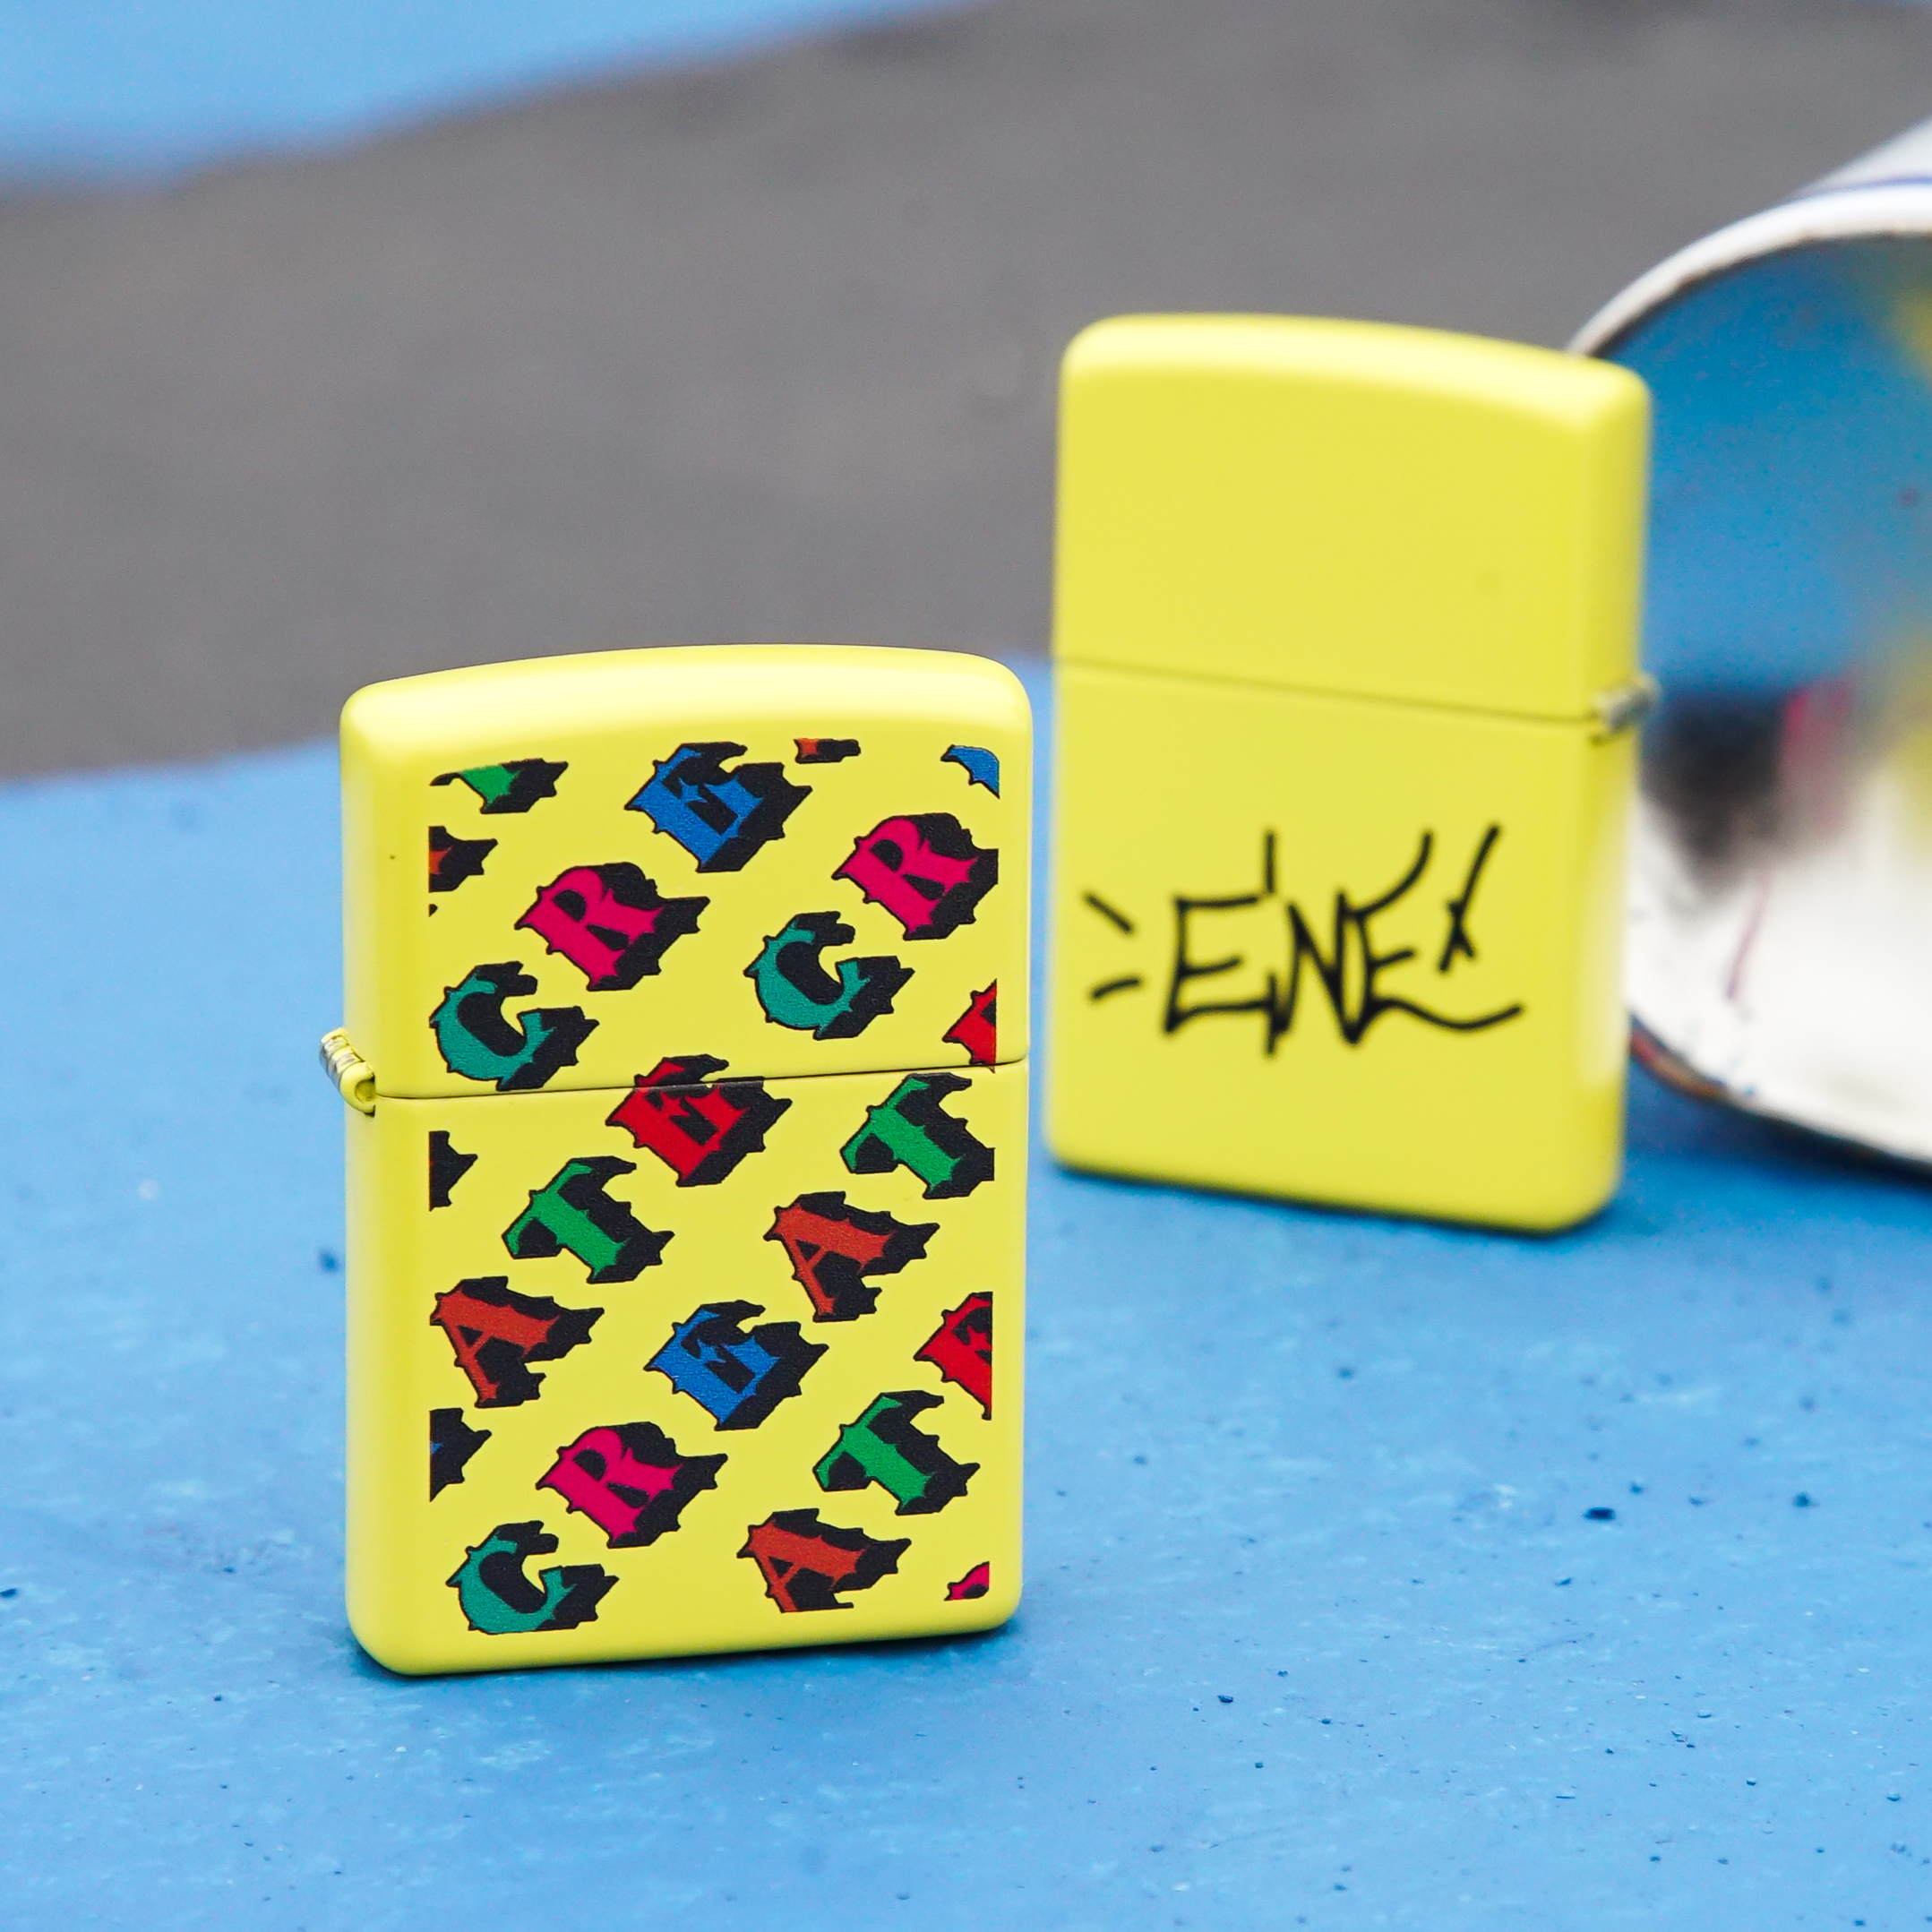 The CREATE Zippo Lighter